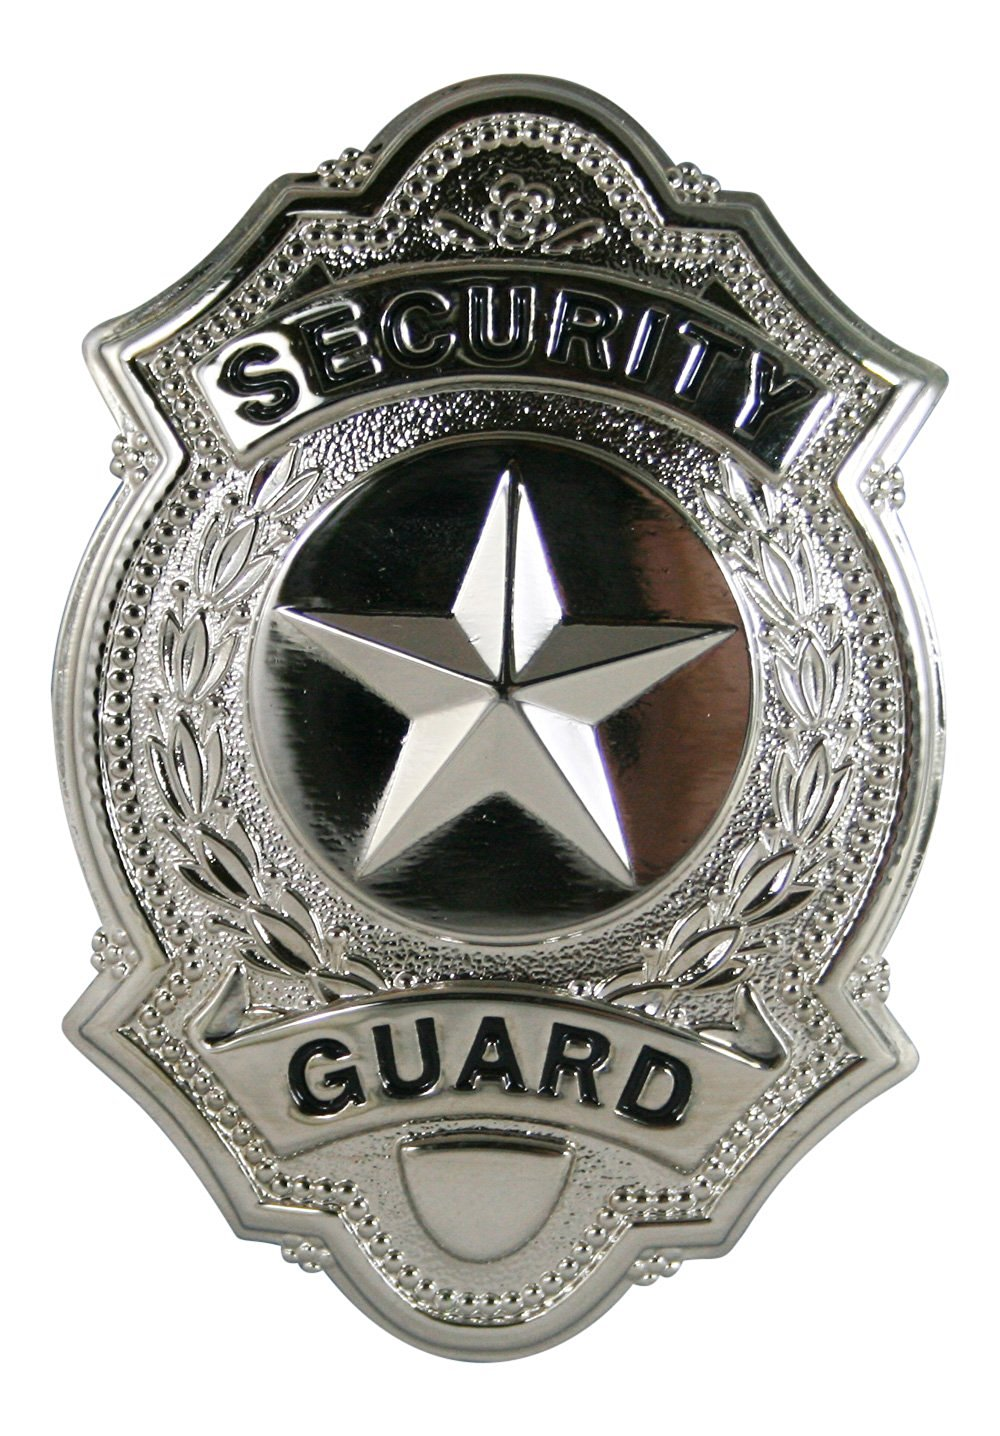 "Security Guard Officer Star Center Uniform Shirt Jacket Badge Shield Silver Nickel Finish 1-5/8"" x 2-1/2"""